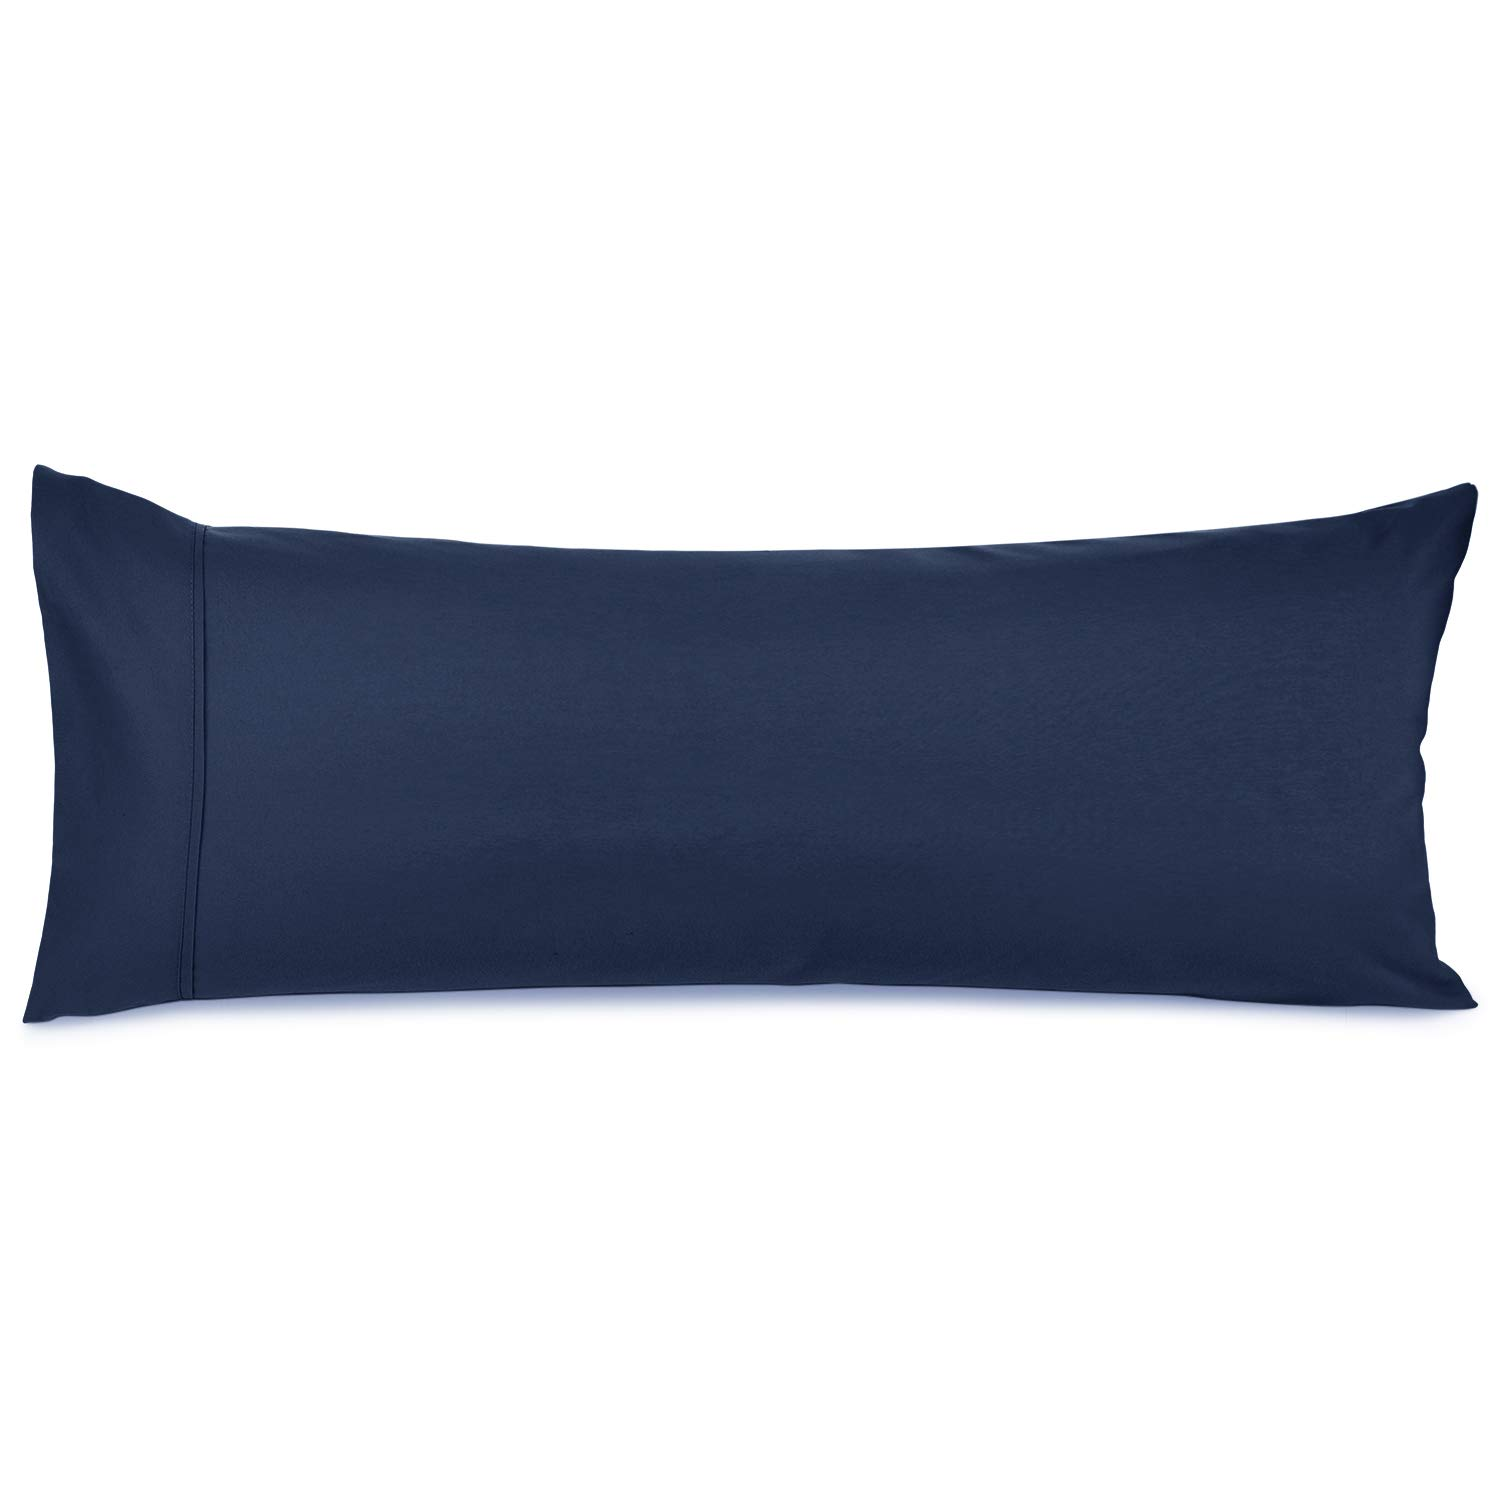 """Nestl Bedding Body Pillow Case - Double Brushed Microfiber Hypoallergenic Pillow Covers - 1800 Series Premium Bed Pillow Cases, 20""""x54"""" - Navy"""